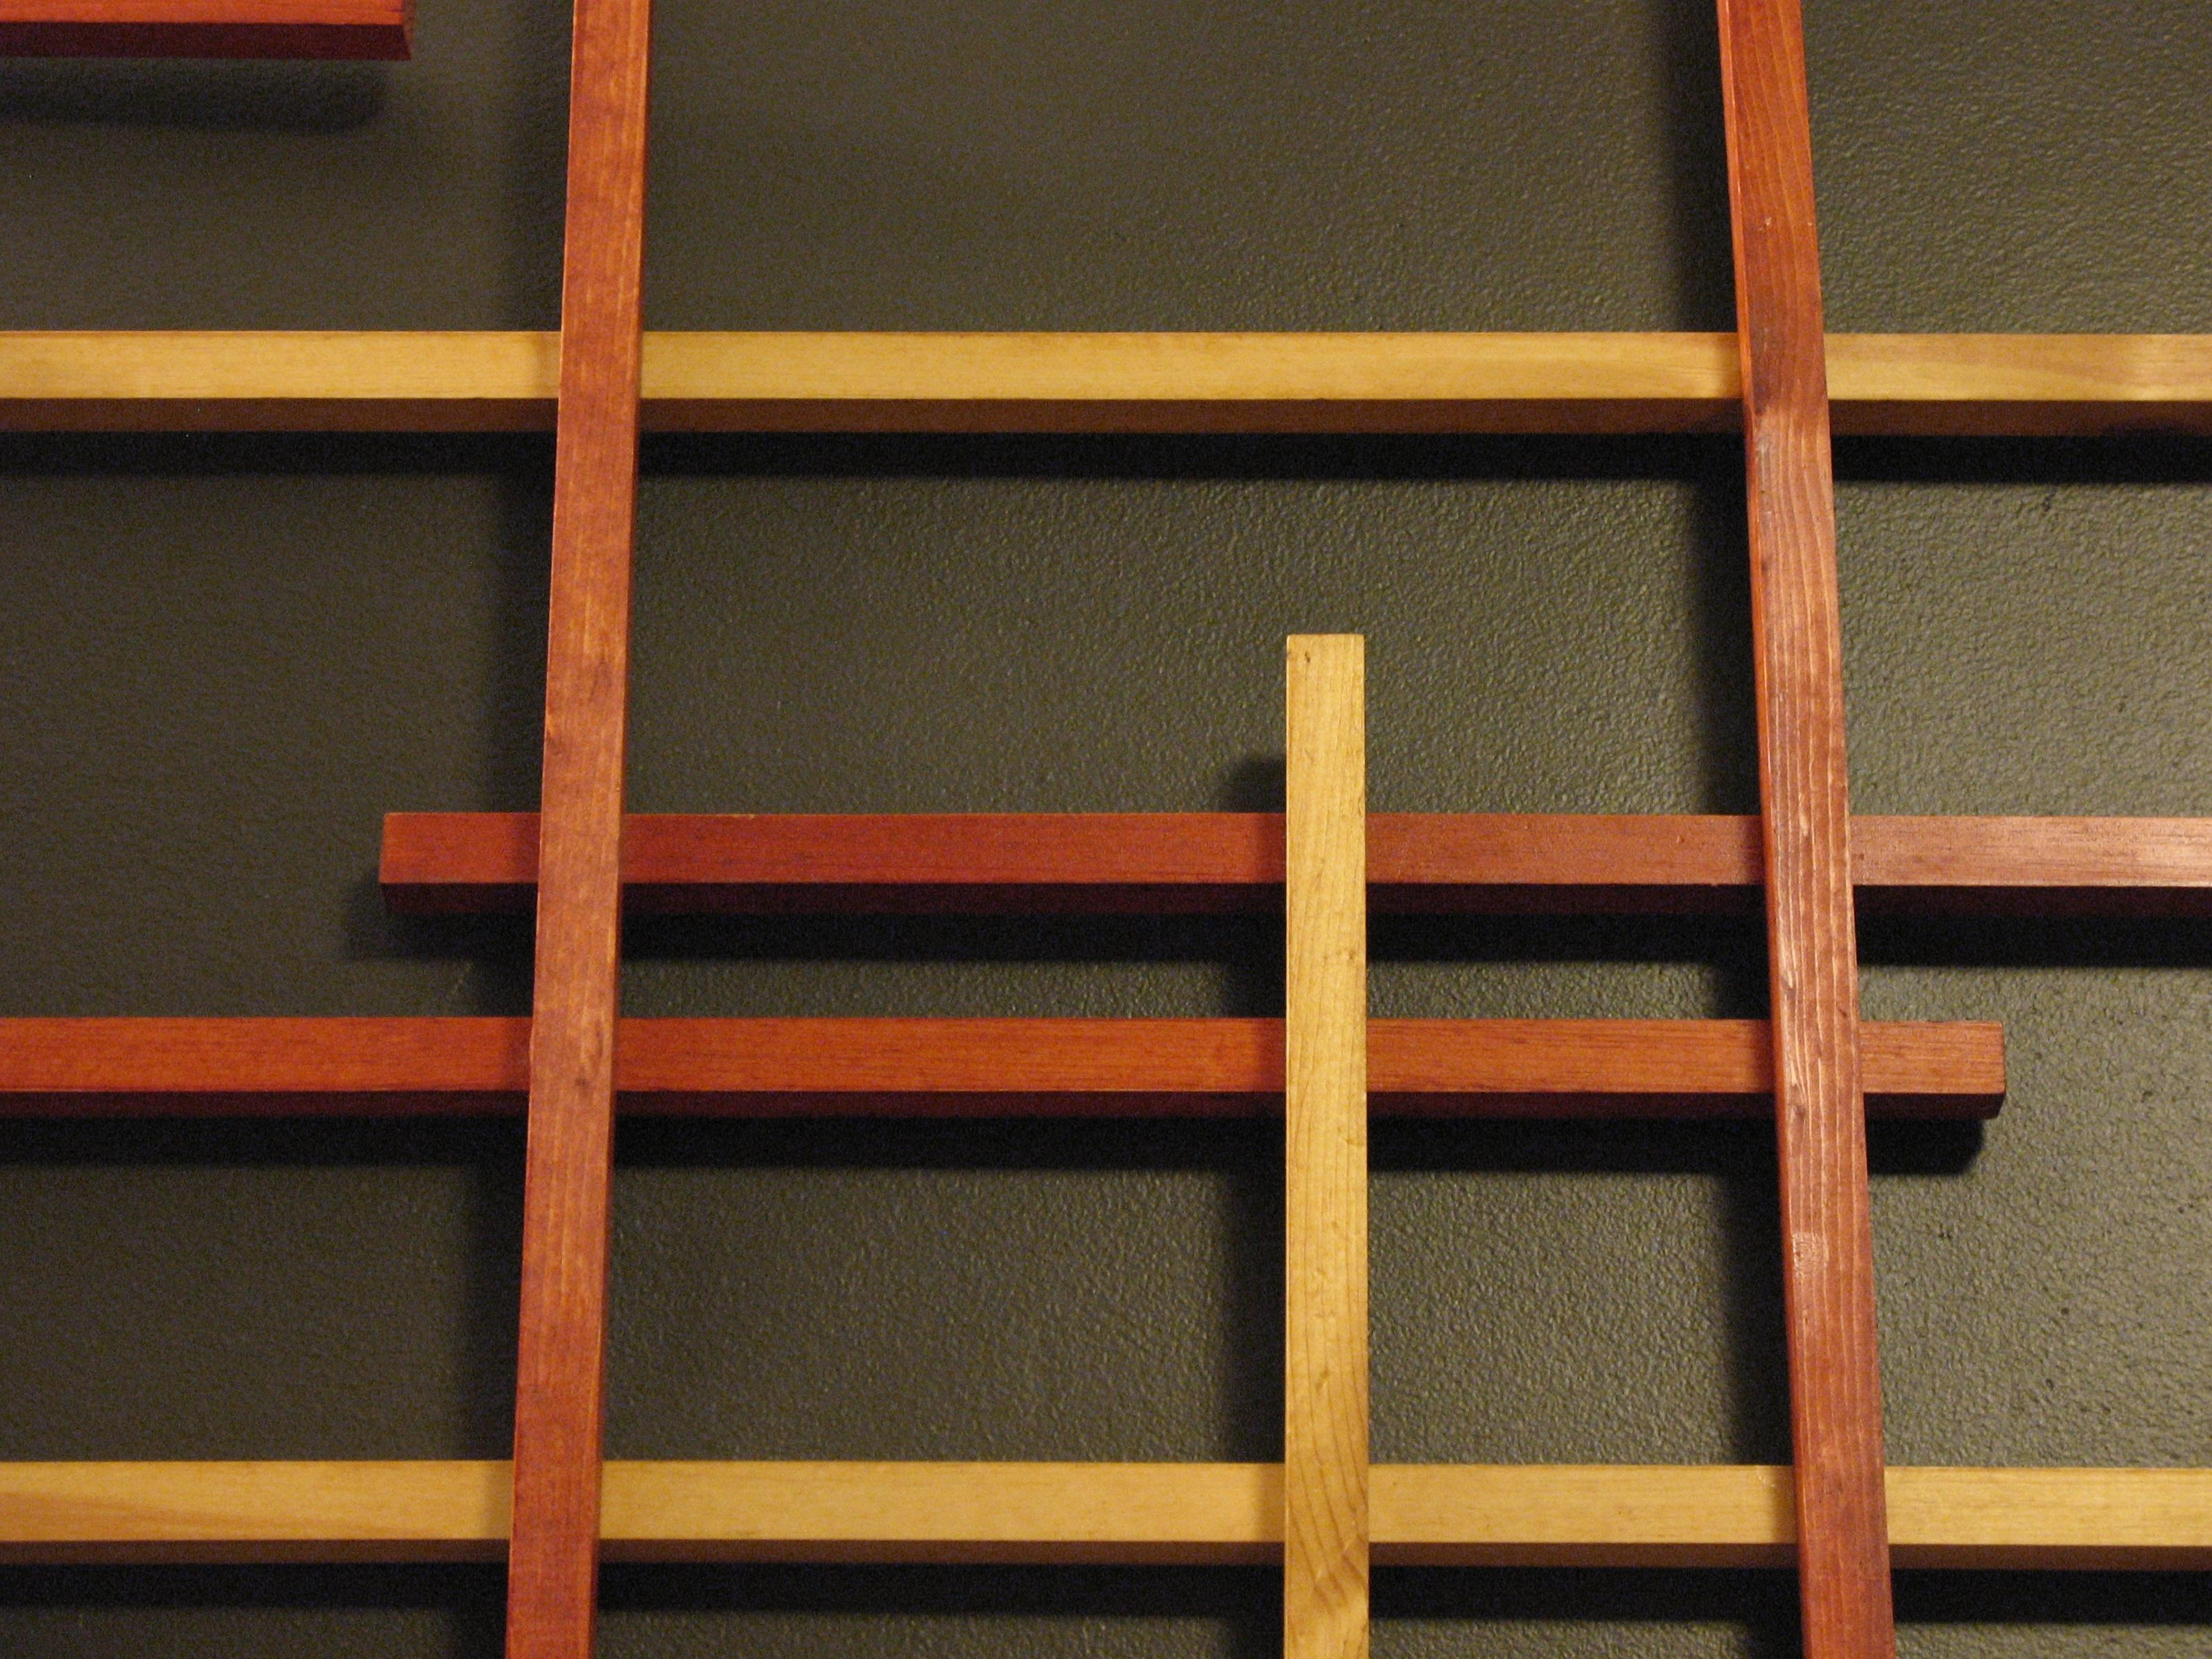 Wall Art | Occasional Woodworking Throughout Stained Wood Wall Art (Image 13 of 20)